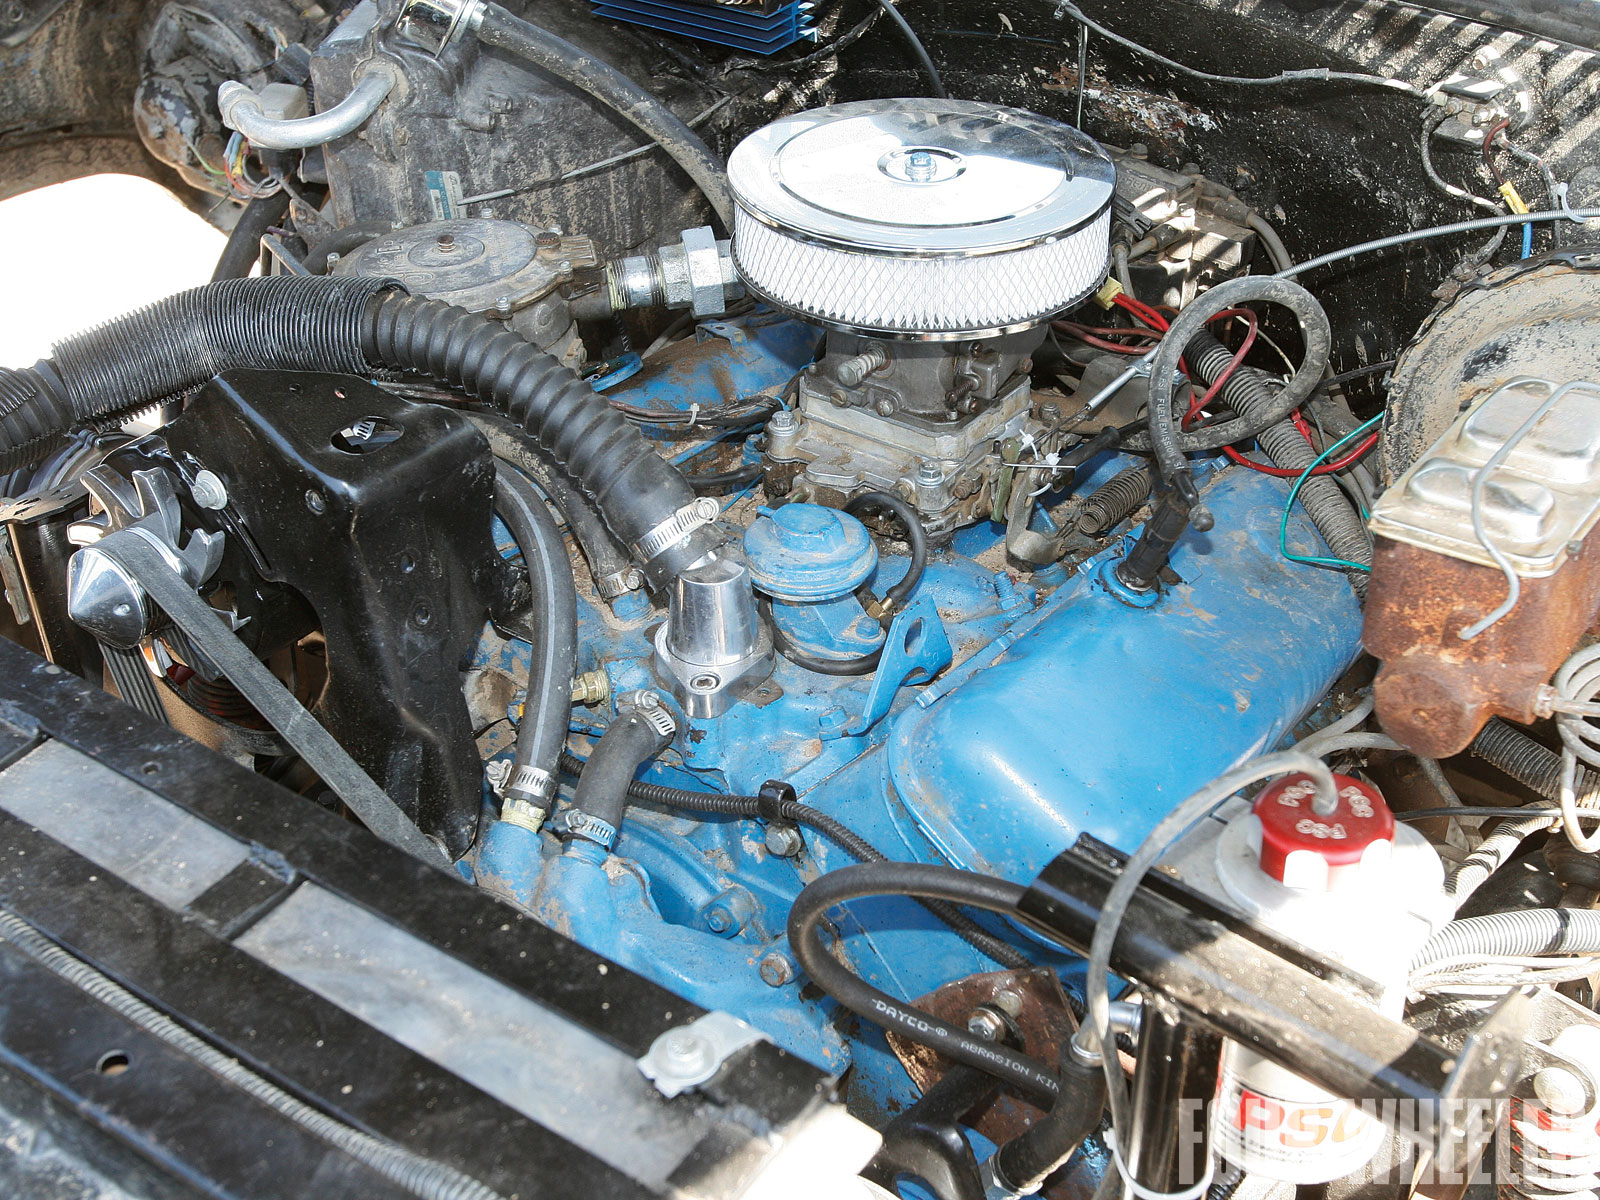 John Retzloff 1977 Gmc K15 Engine Shot